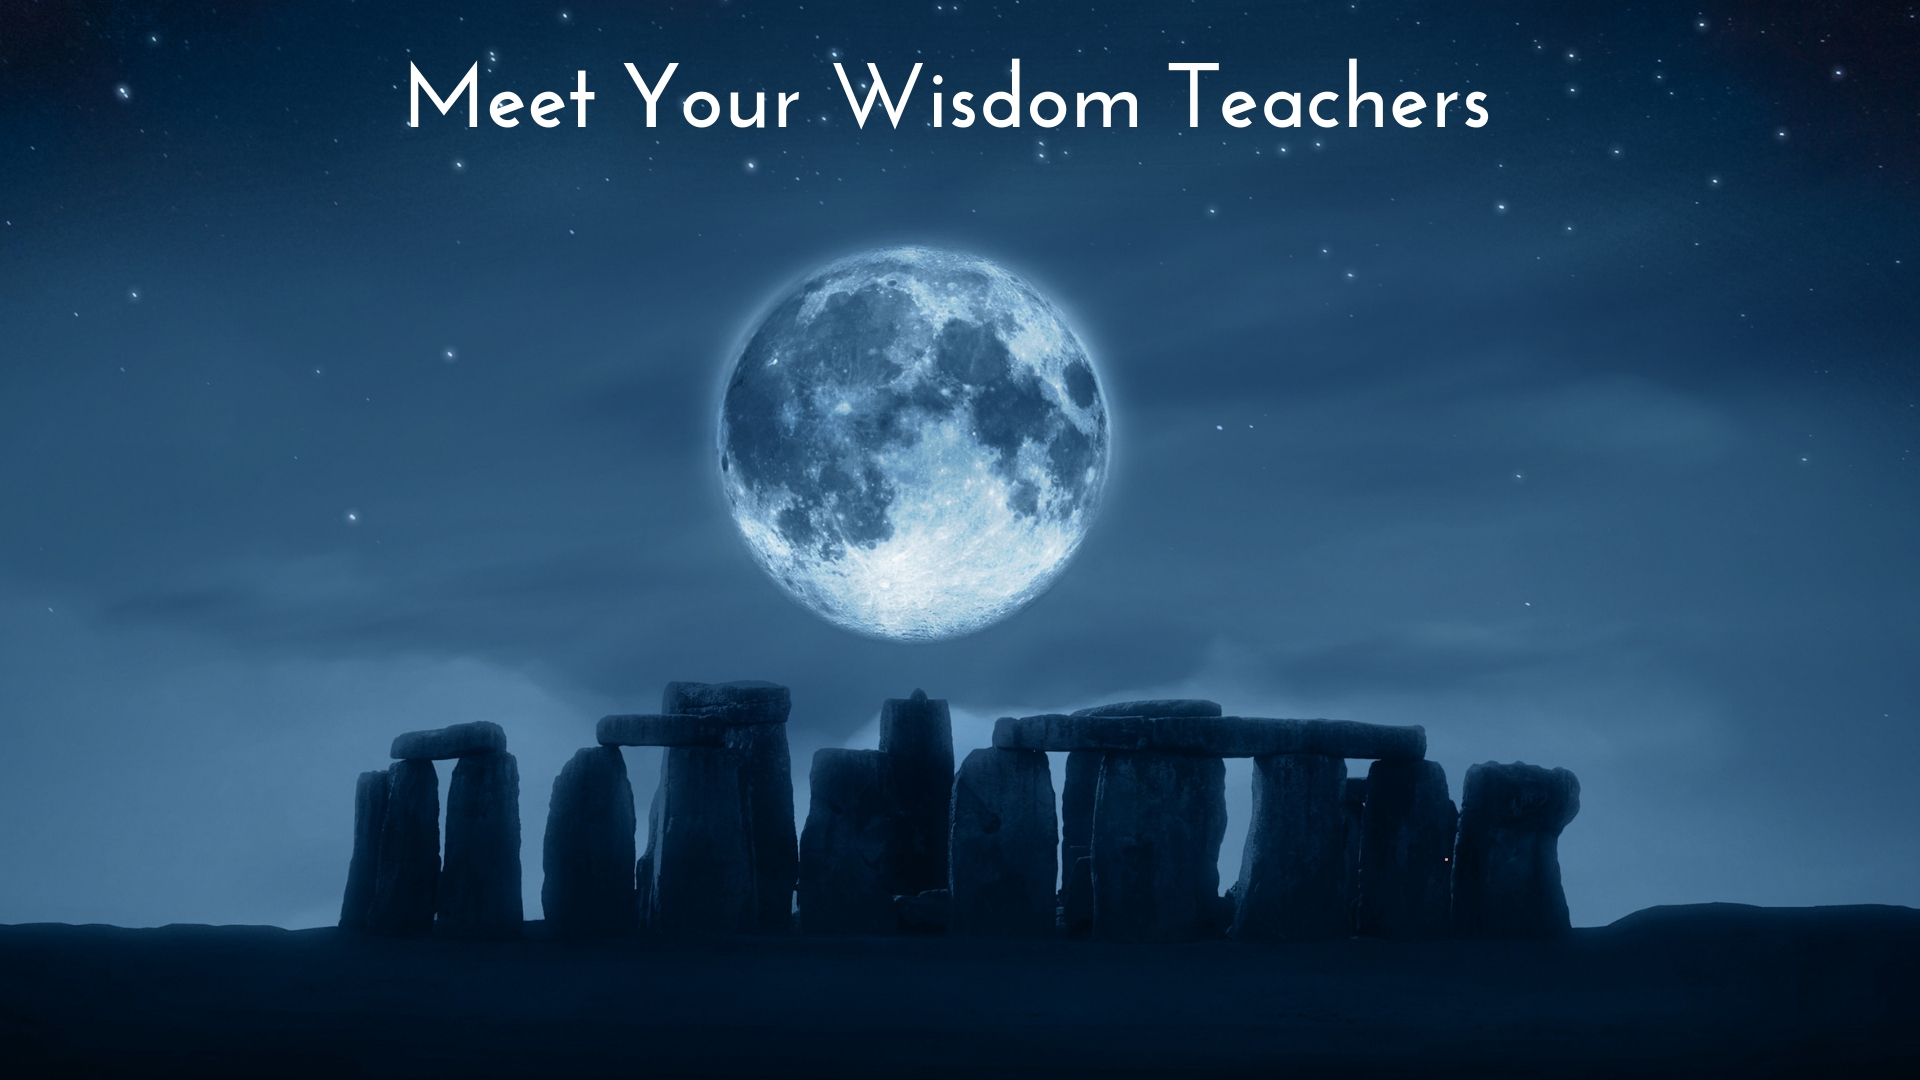 Meet the wisdom teachers - Cissi Williams takes you on a guided journey where you meet your Wisdom Teachers.